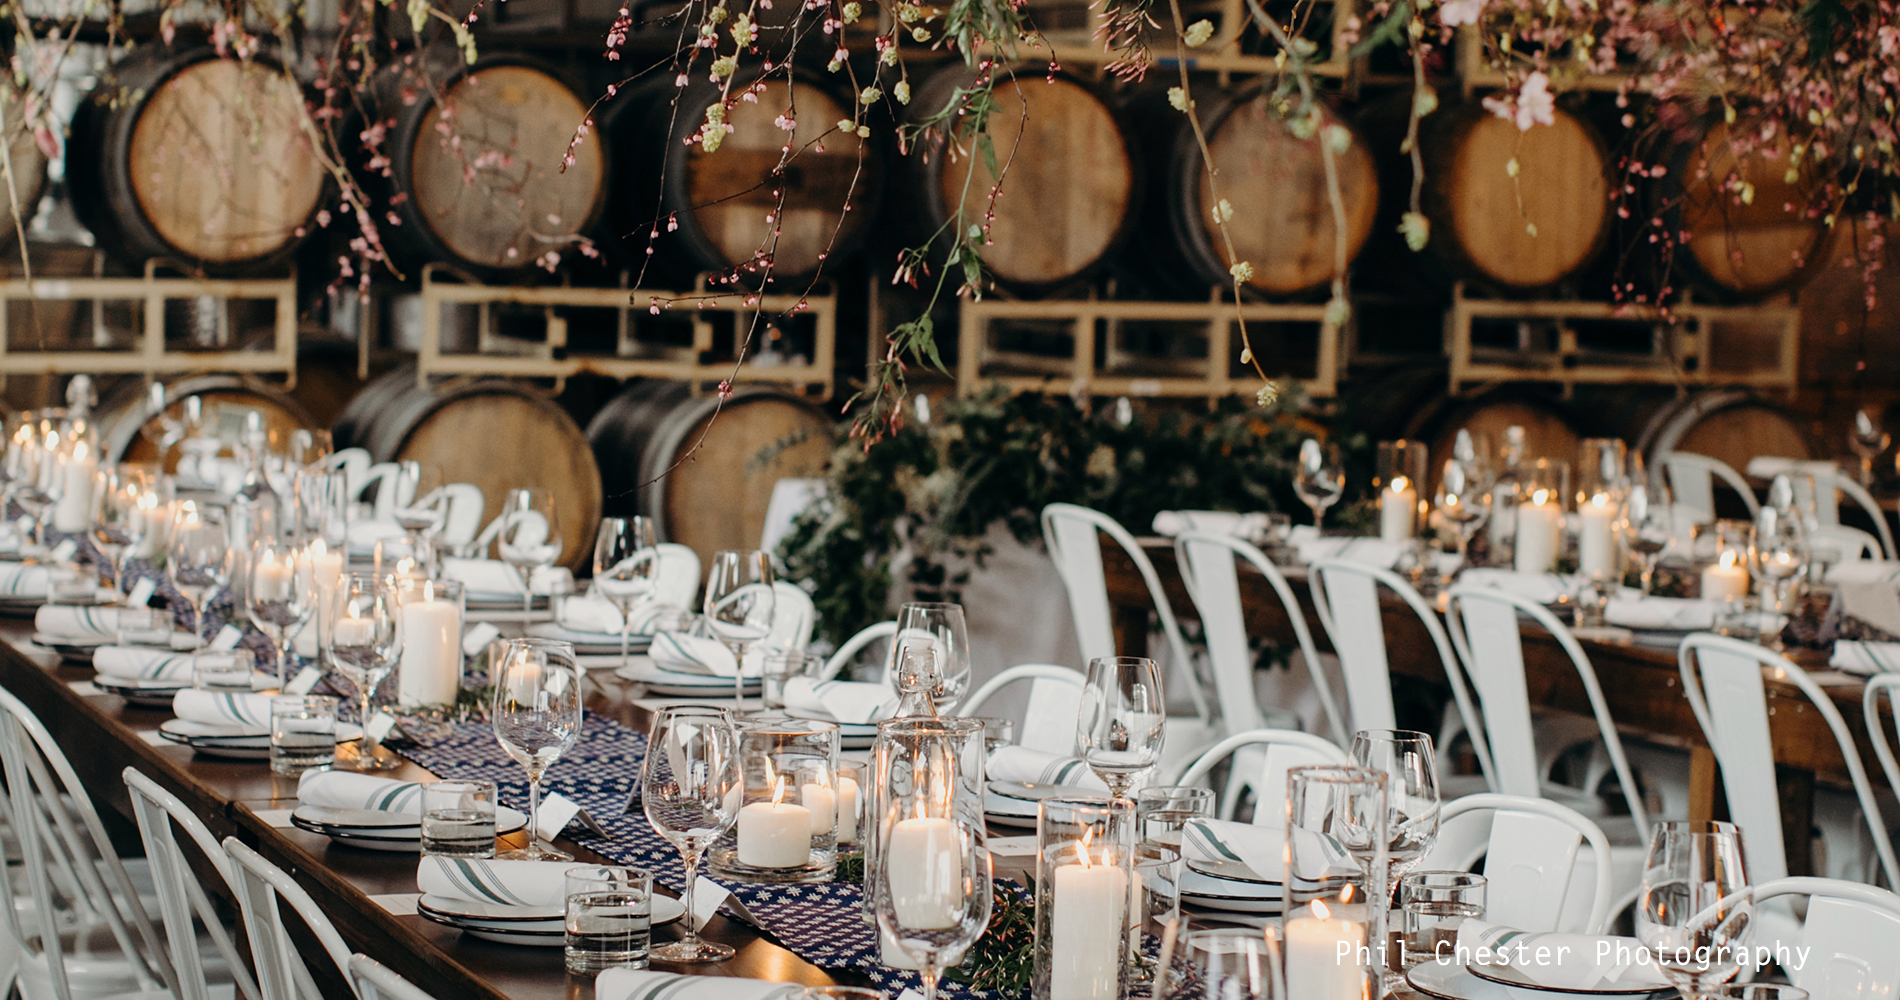 Phil_Chester_Photography_2_Weddings_Wedding_Events_Design_Wedding_Cake_Corporate_Business_Meeting_Sales_Training_Event_Marketing_Oregon_Portland_Adventure_Winery_Taproom_Event-Space_Dinner_Party_Restaurant